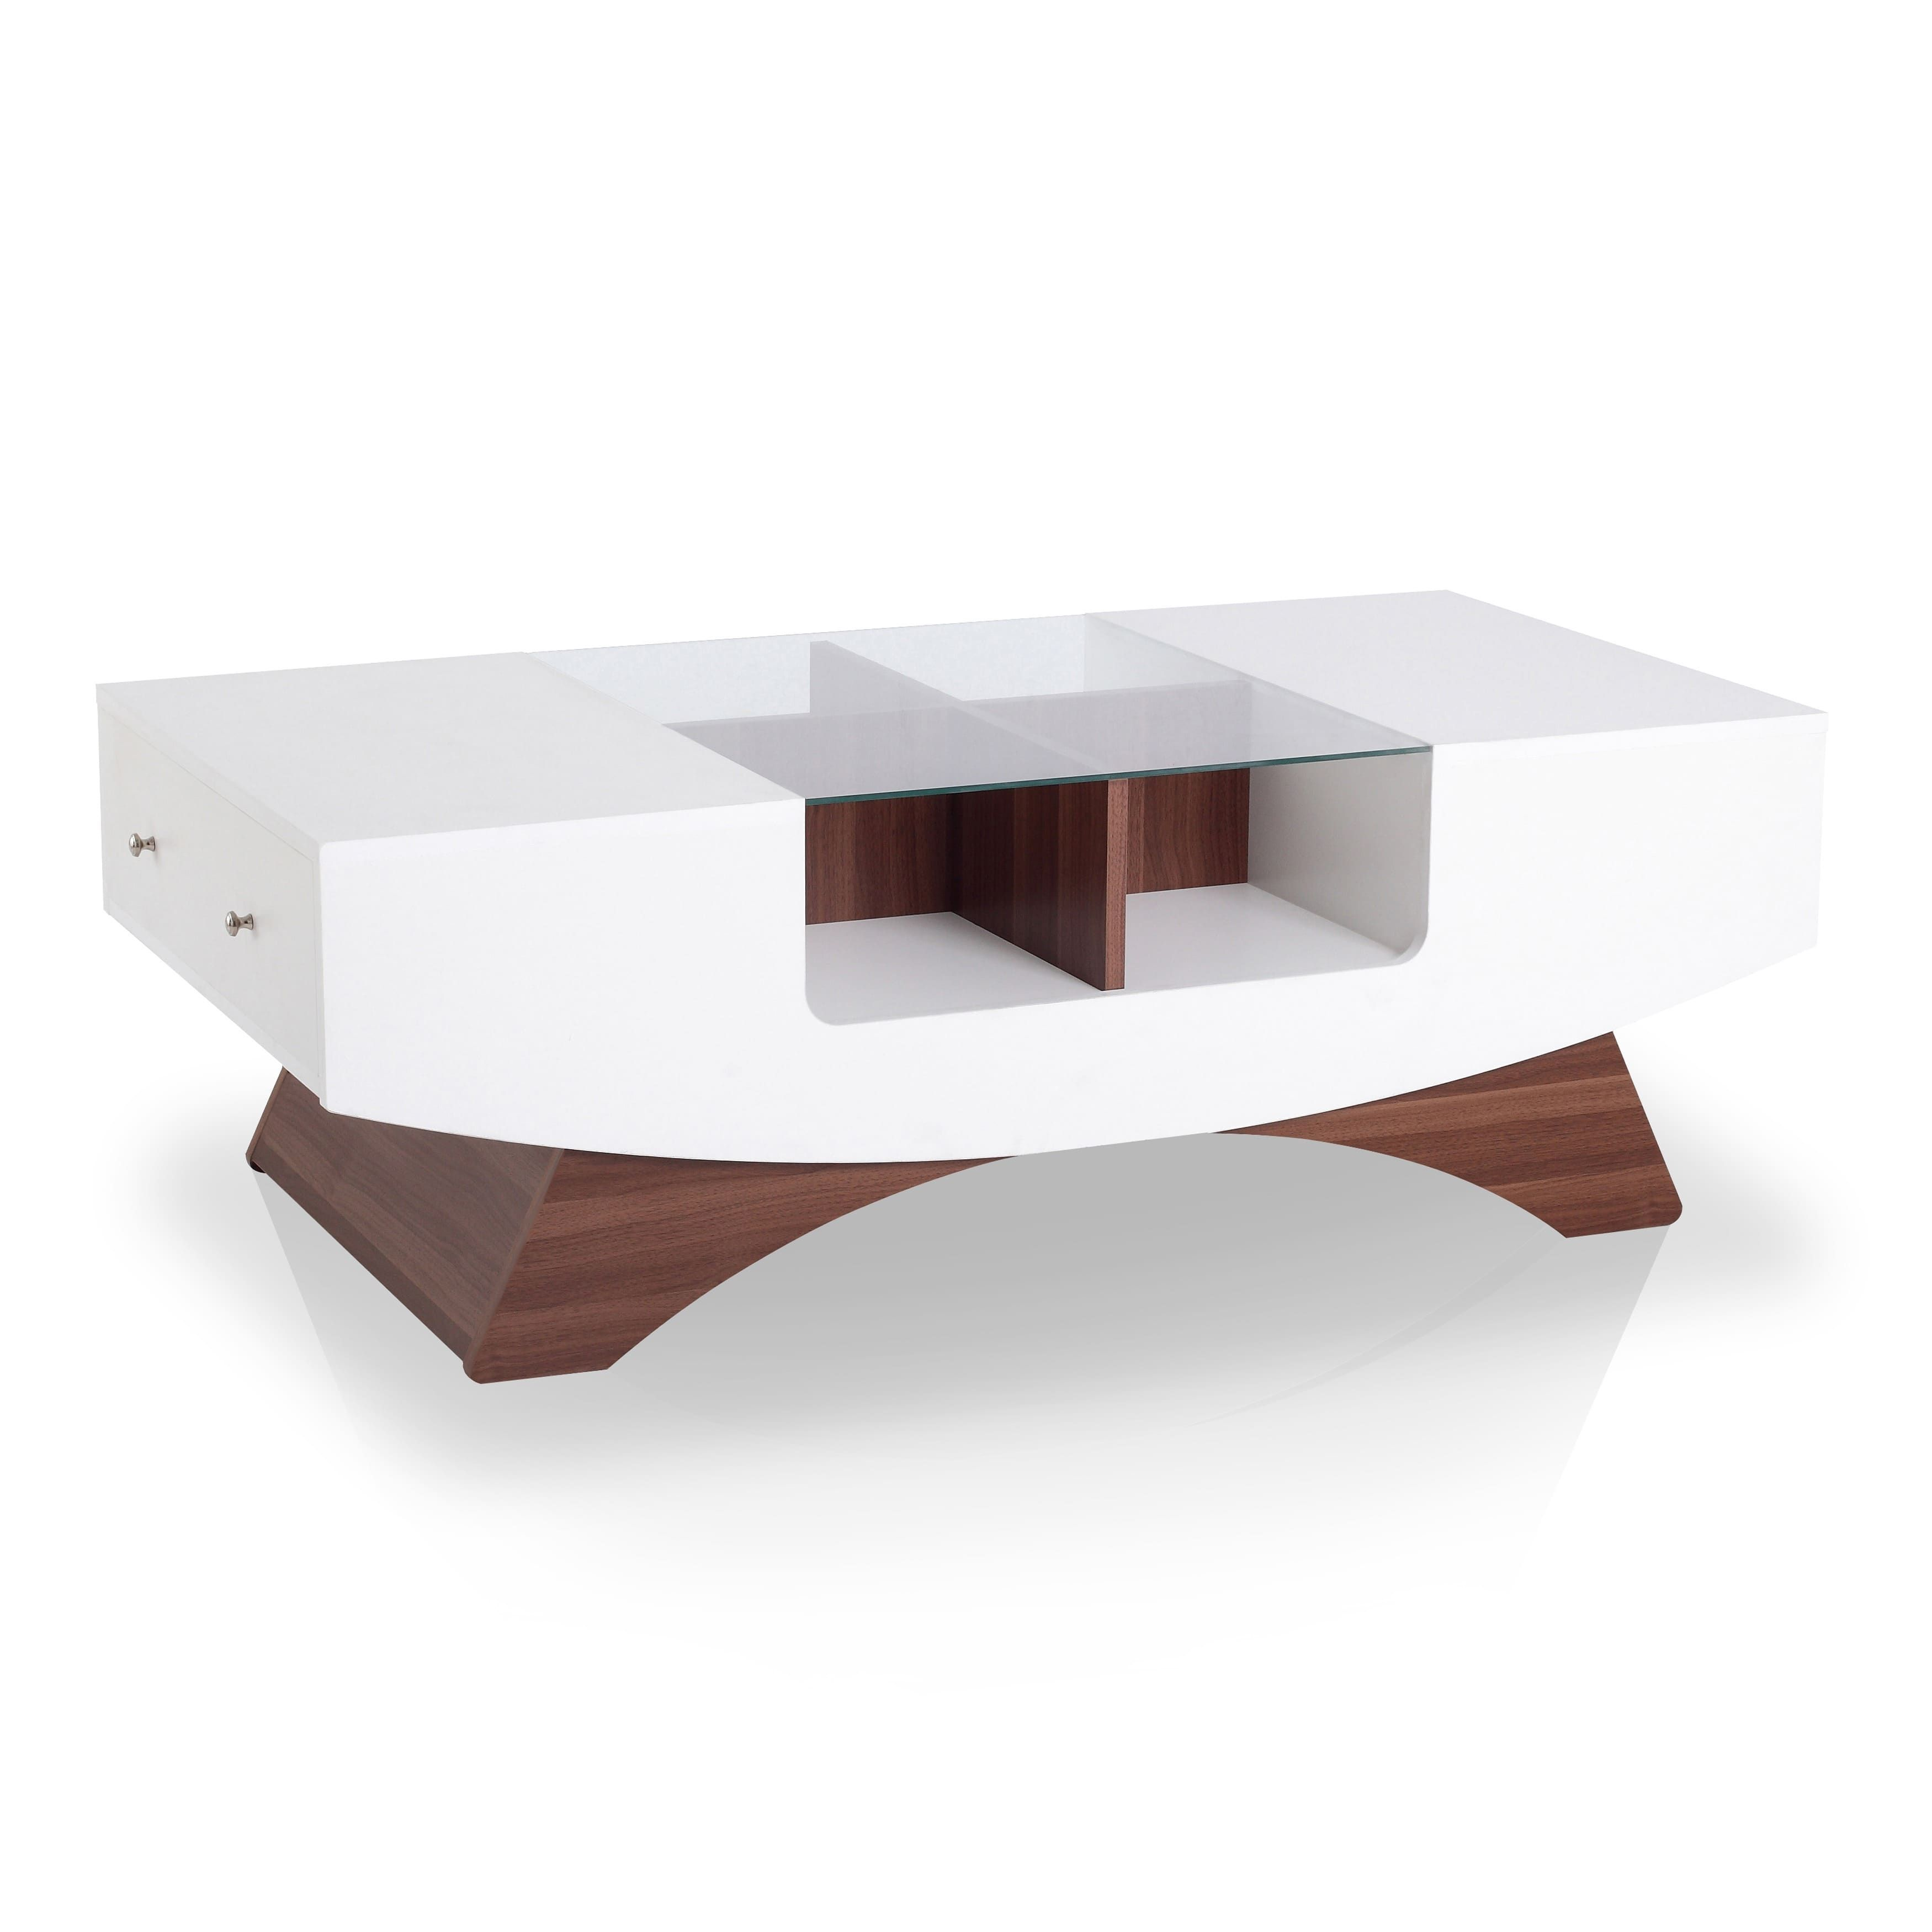 Our Best Living Room Furniture Deals Modern Wood Coffee Table Contemporary Coffee Table Coffee Table With Storage [ 3500 x 3500 Pixel ]